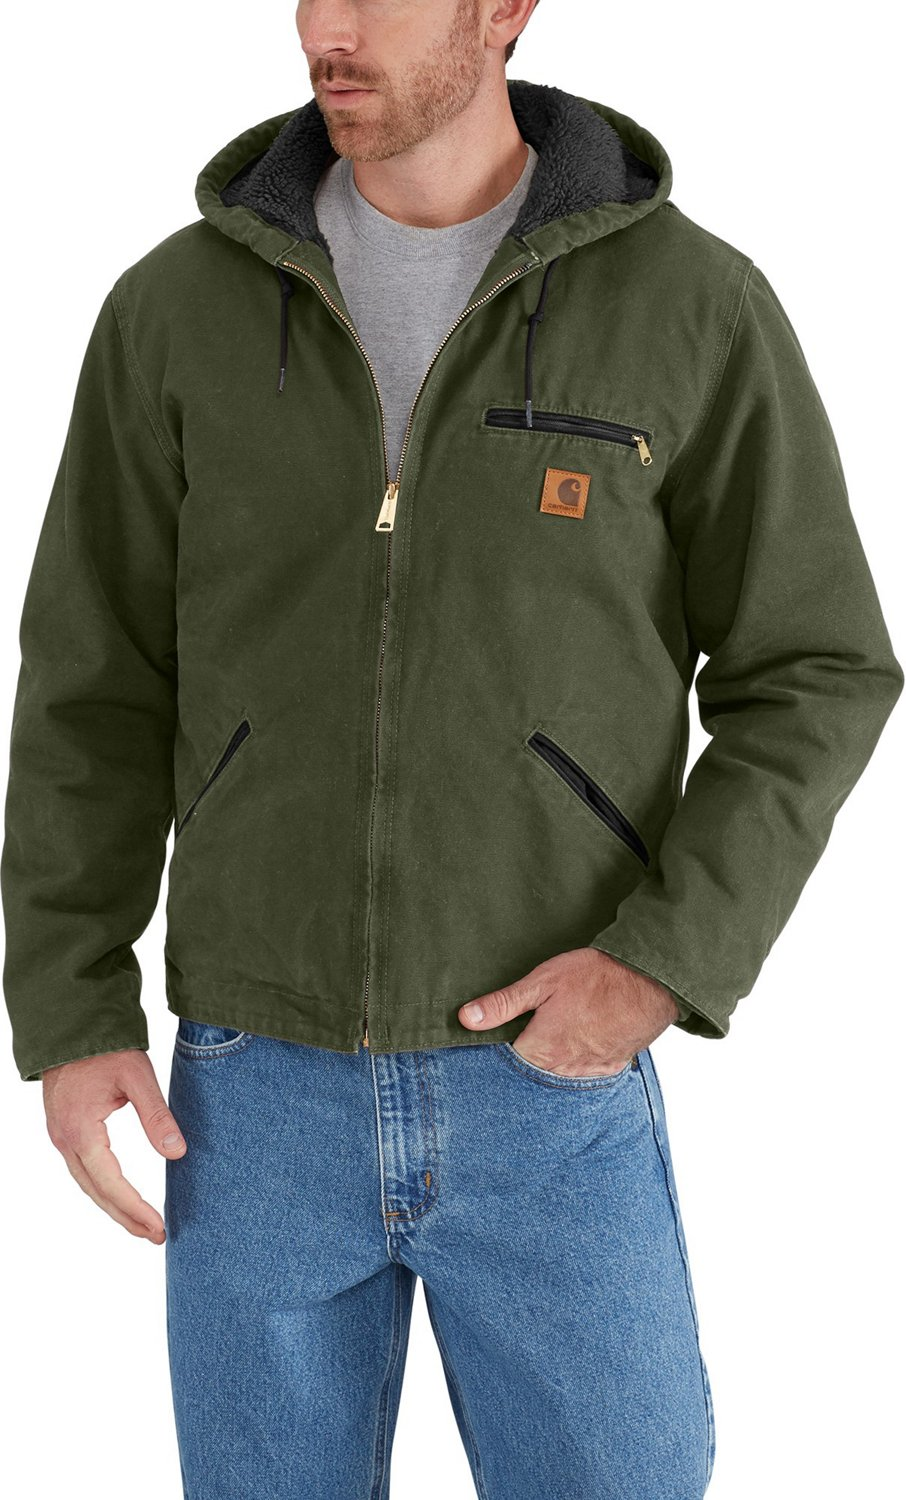 fde54069 Display product reviews for Carhartt Men's Sandstone Sierra Jacket